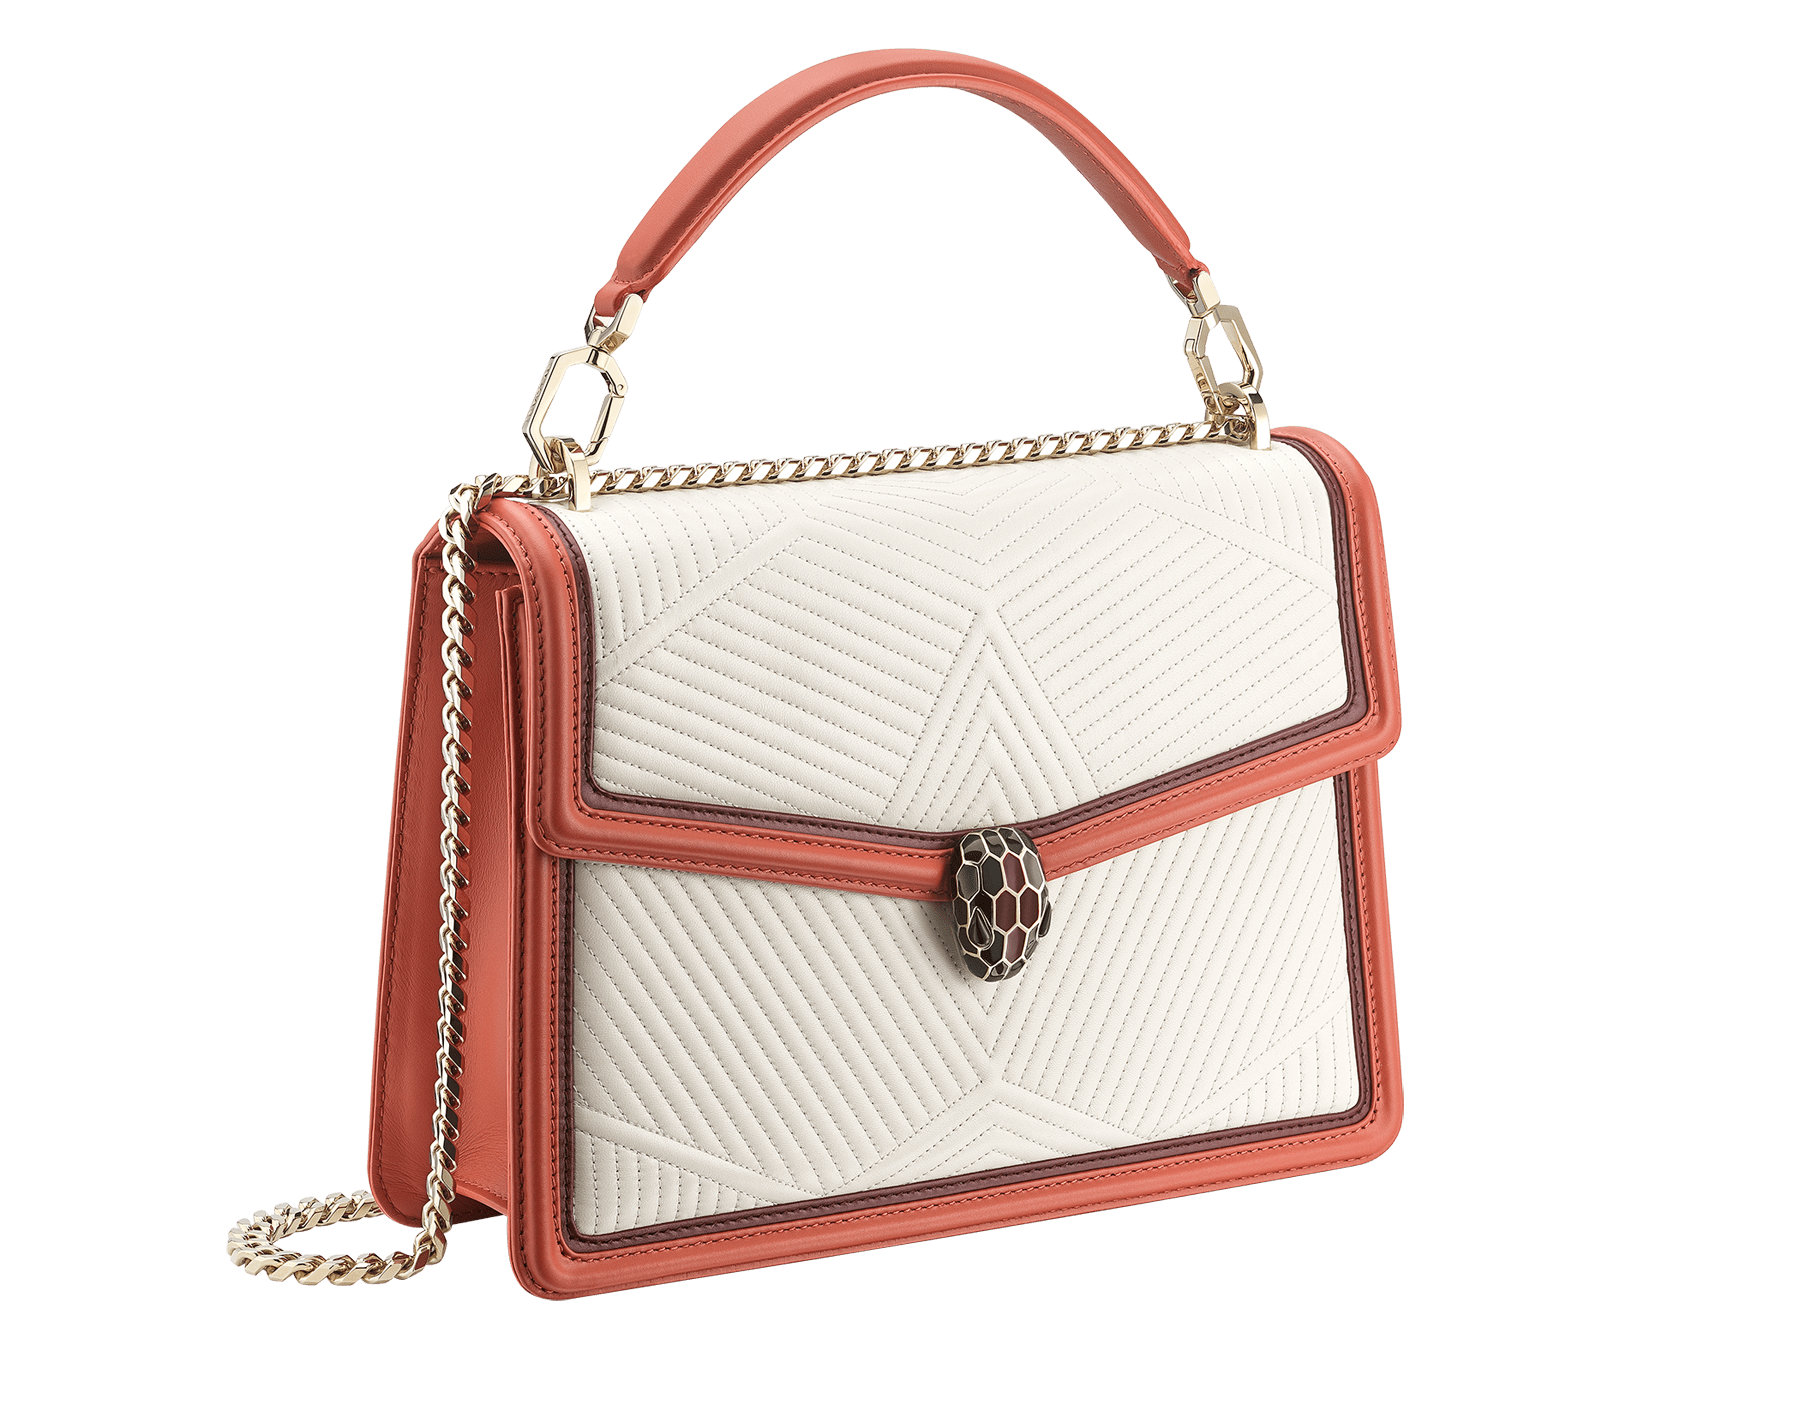 Top handle bag Serpenti Forever featuring a Framed Quilted motif in roman garnet nappa and black smooth calf leather. Brass light gold plated tempting snake head closure in black and white enamel, with eyes in black onyx. 973-FQDc image 3